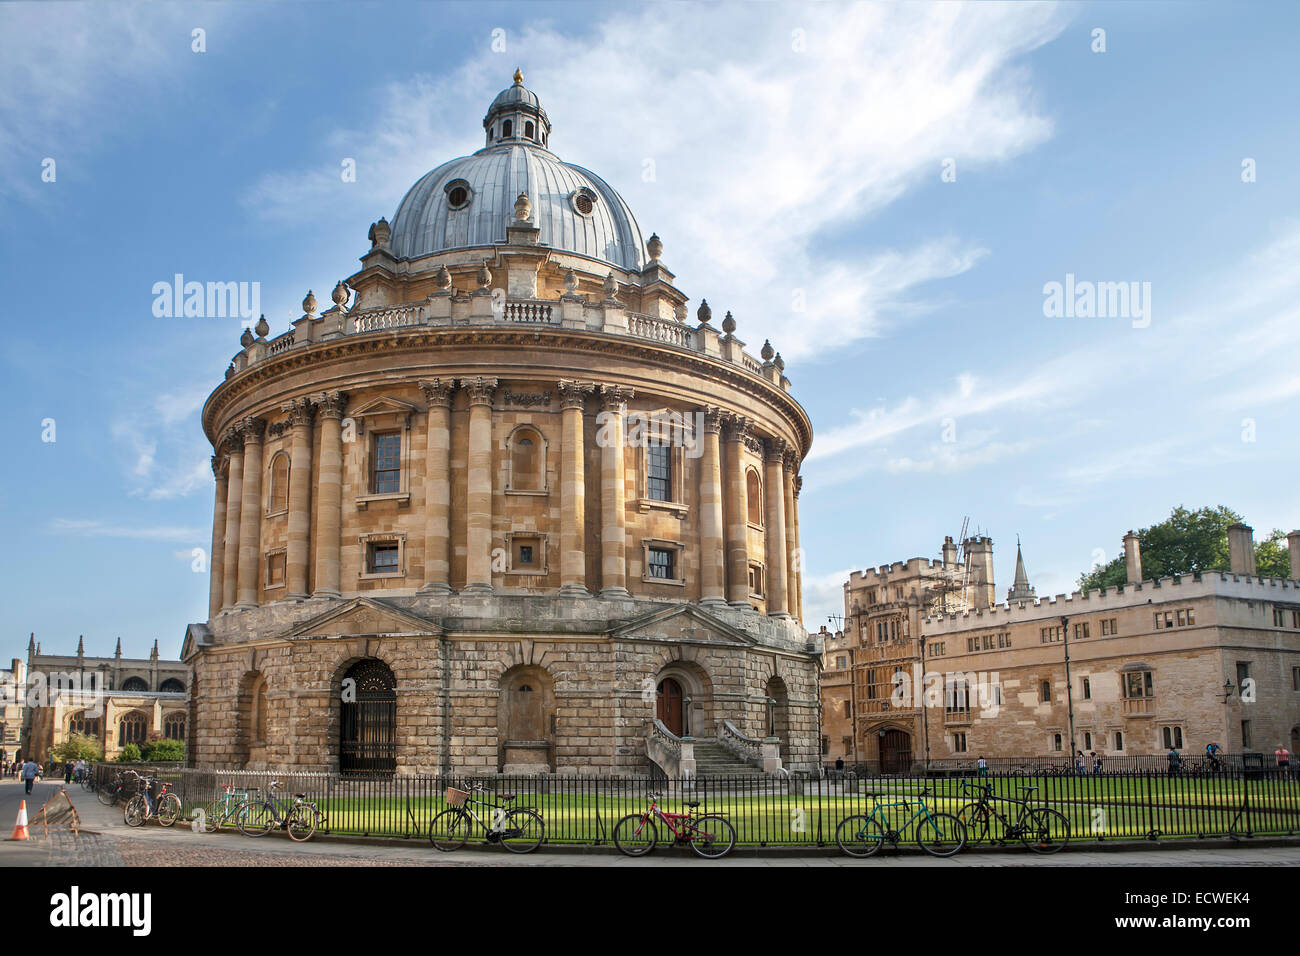 Oxford, UK - August 27, 2014: view of the Radcliffe Camera with All Souls College in Oxford, UK. The historic building - Stock Image